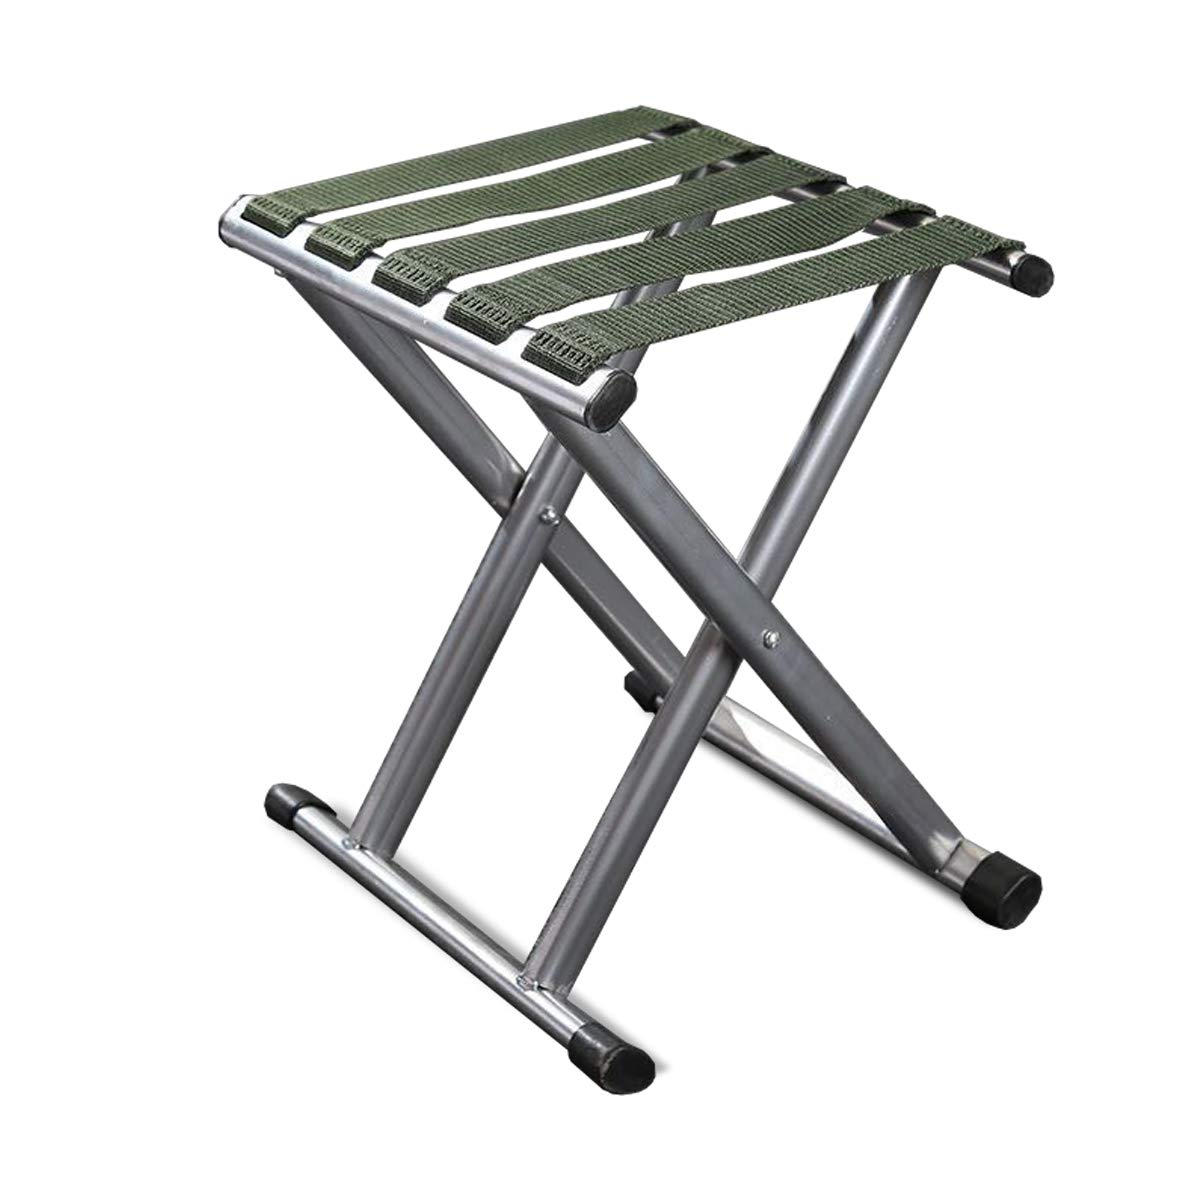 Folding Camping Stool Strong Heavy Duty Outdoor Folding Chair Suitable for Camping Fishing Mountain Hiking Traveling BBQ Picnic Party